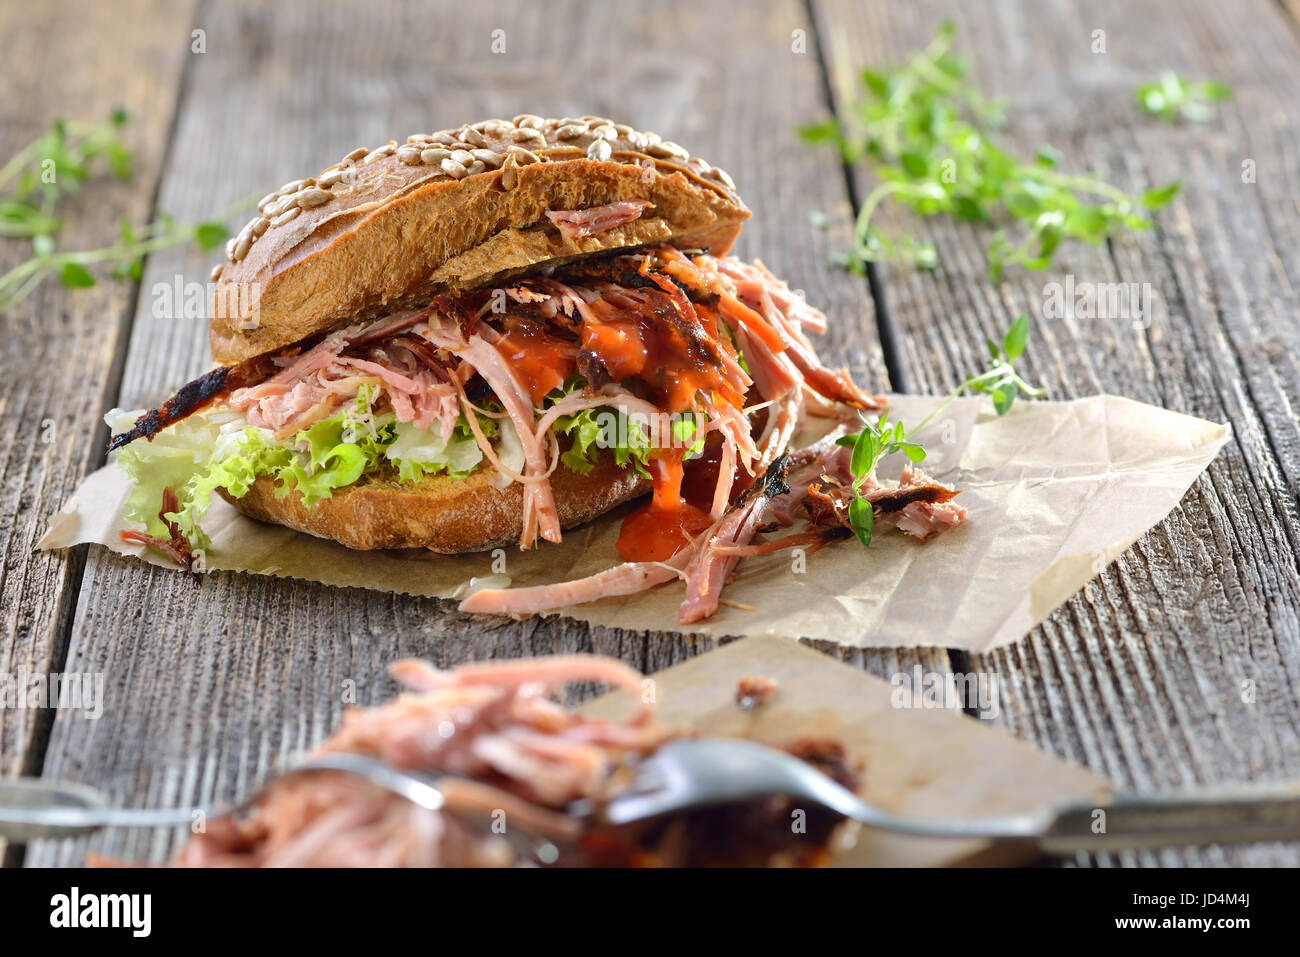 Street food: Barbecue pulled pork wholemeal sandwich with coleslaw, hot BBQ sauce served on brown wrapping paper - Stock Image